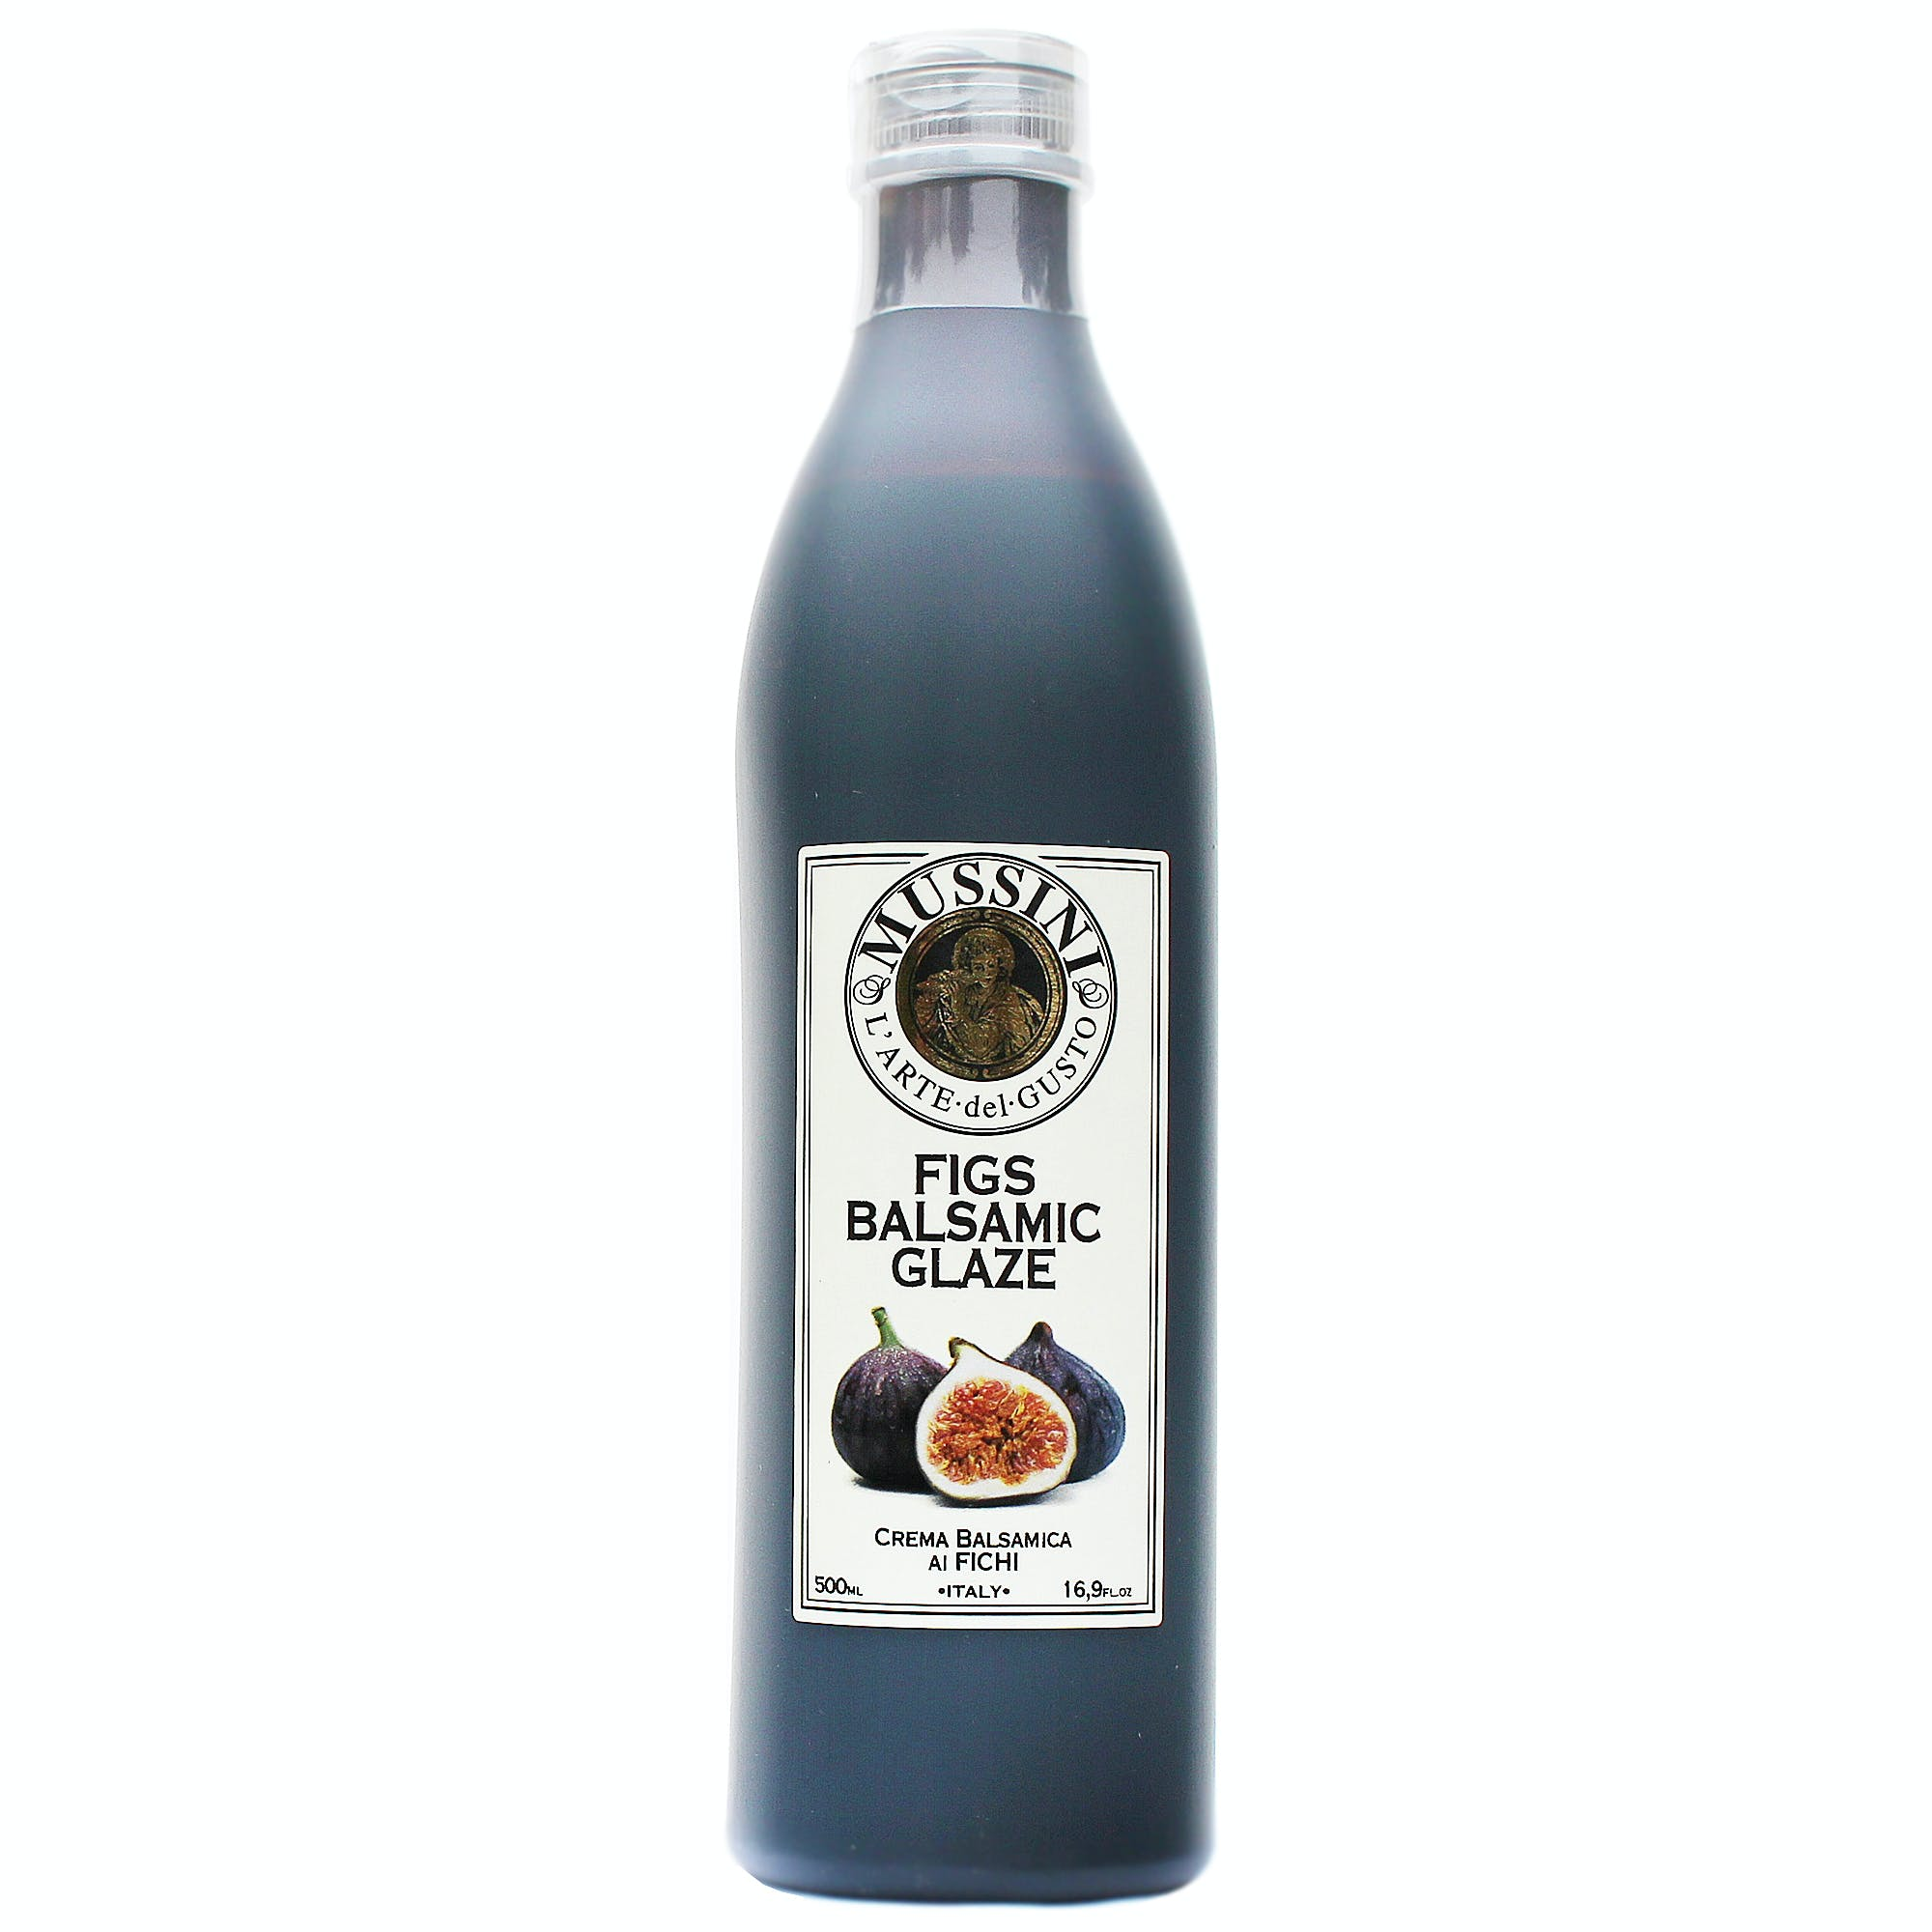 Italian Fig Balsamic Glazes From Mussini, 16.9 Ounces Balsamic Vinegar sold by M5 Corporation